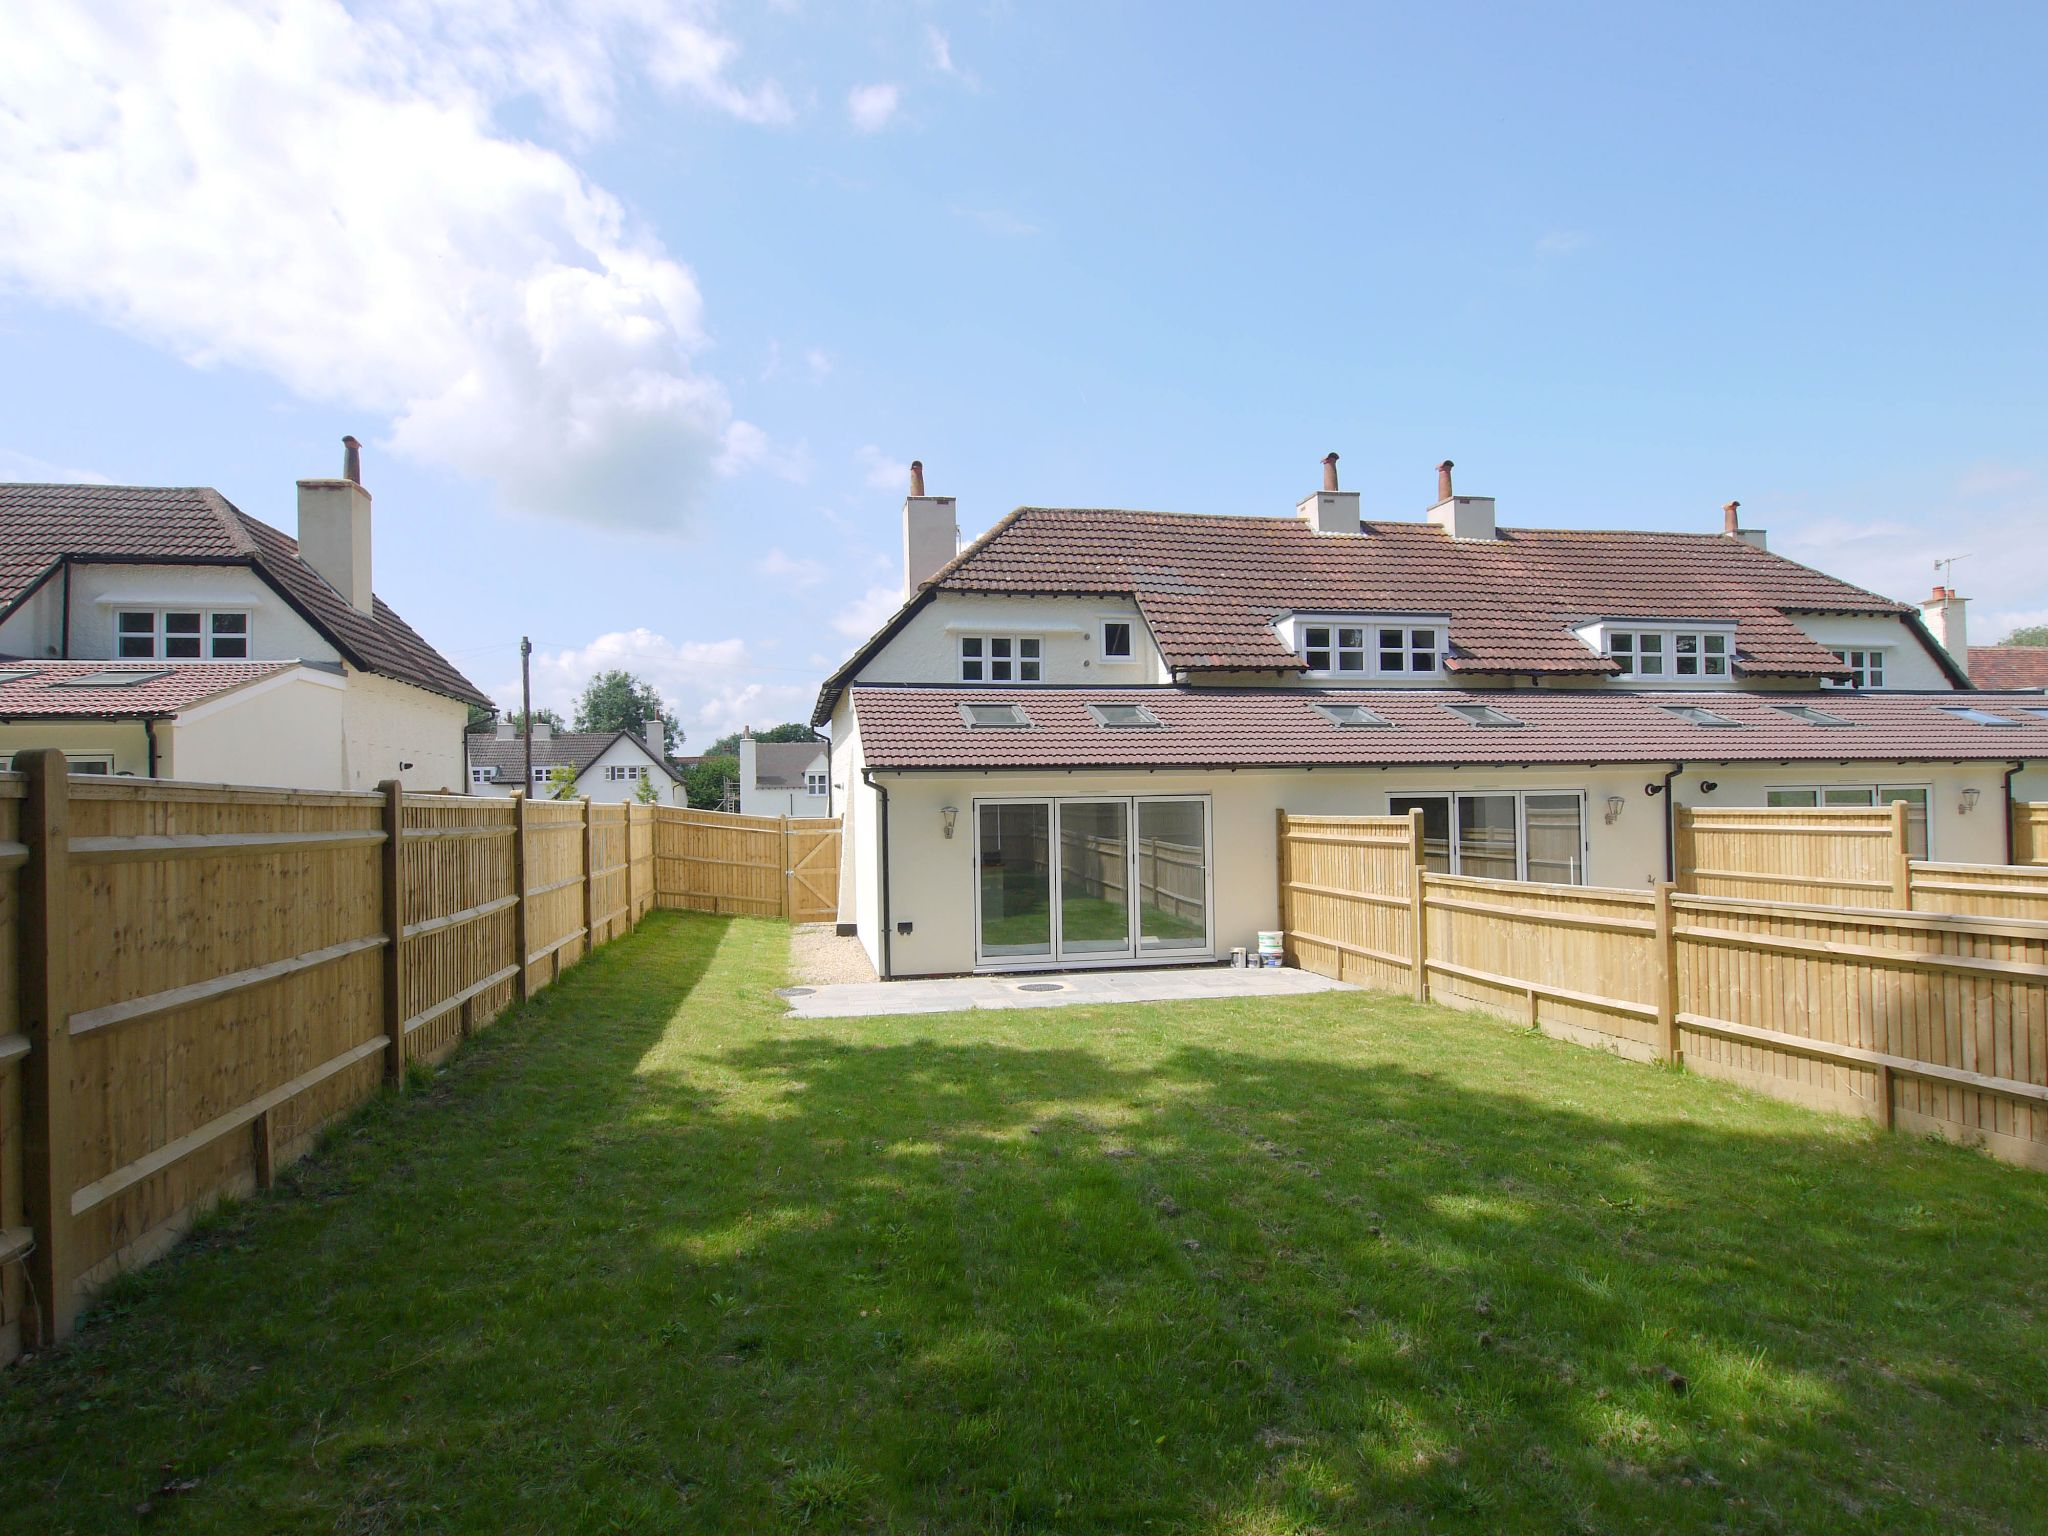 3 bedroom end terraced house Sold in Tonbridge - Photograph 9